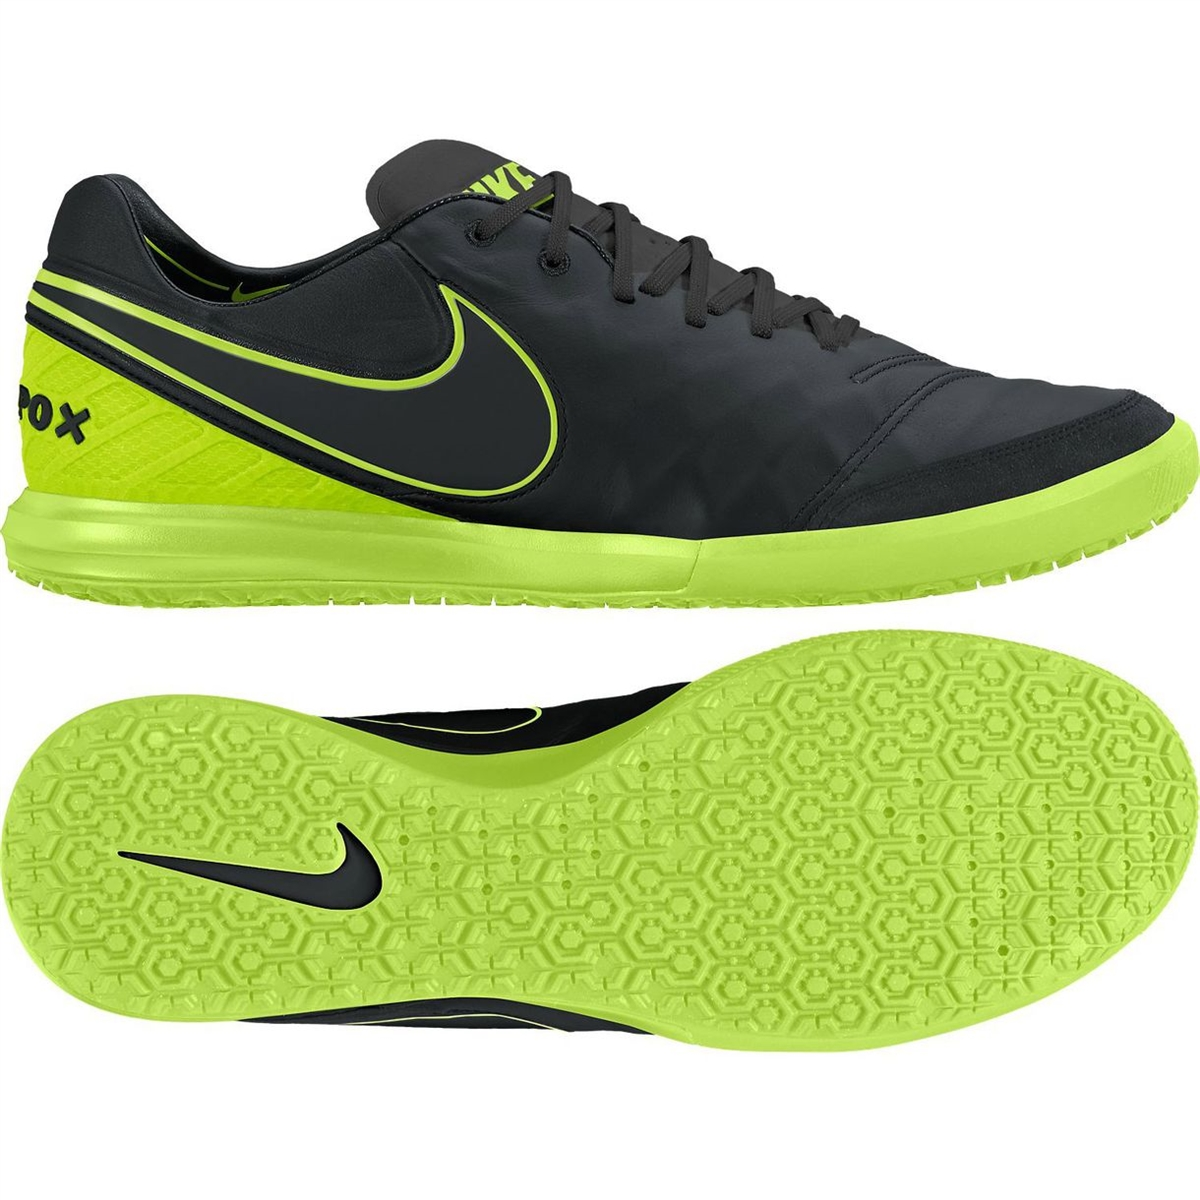 ... nike tiempox proximo ic indoor soccer shoes black volt black cd5fec3f6